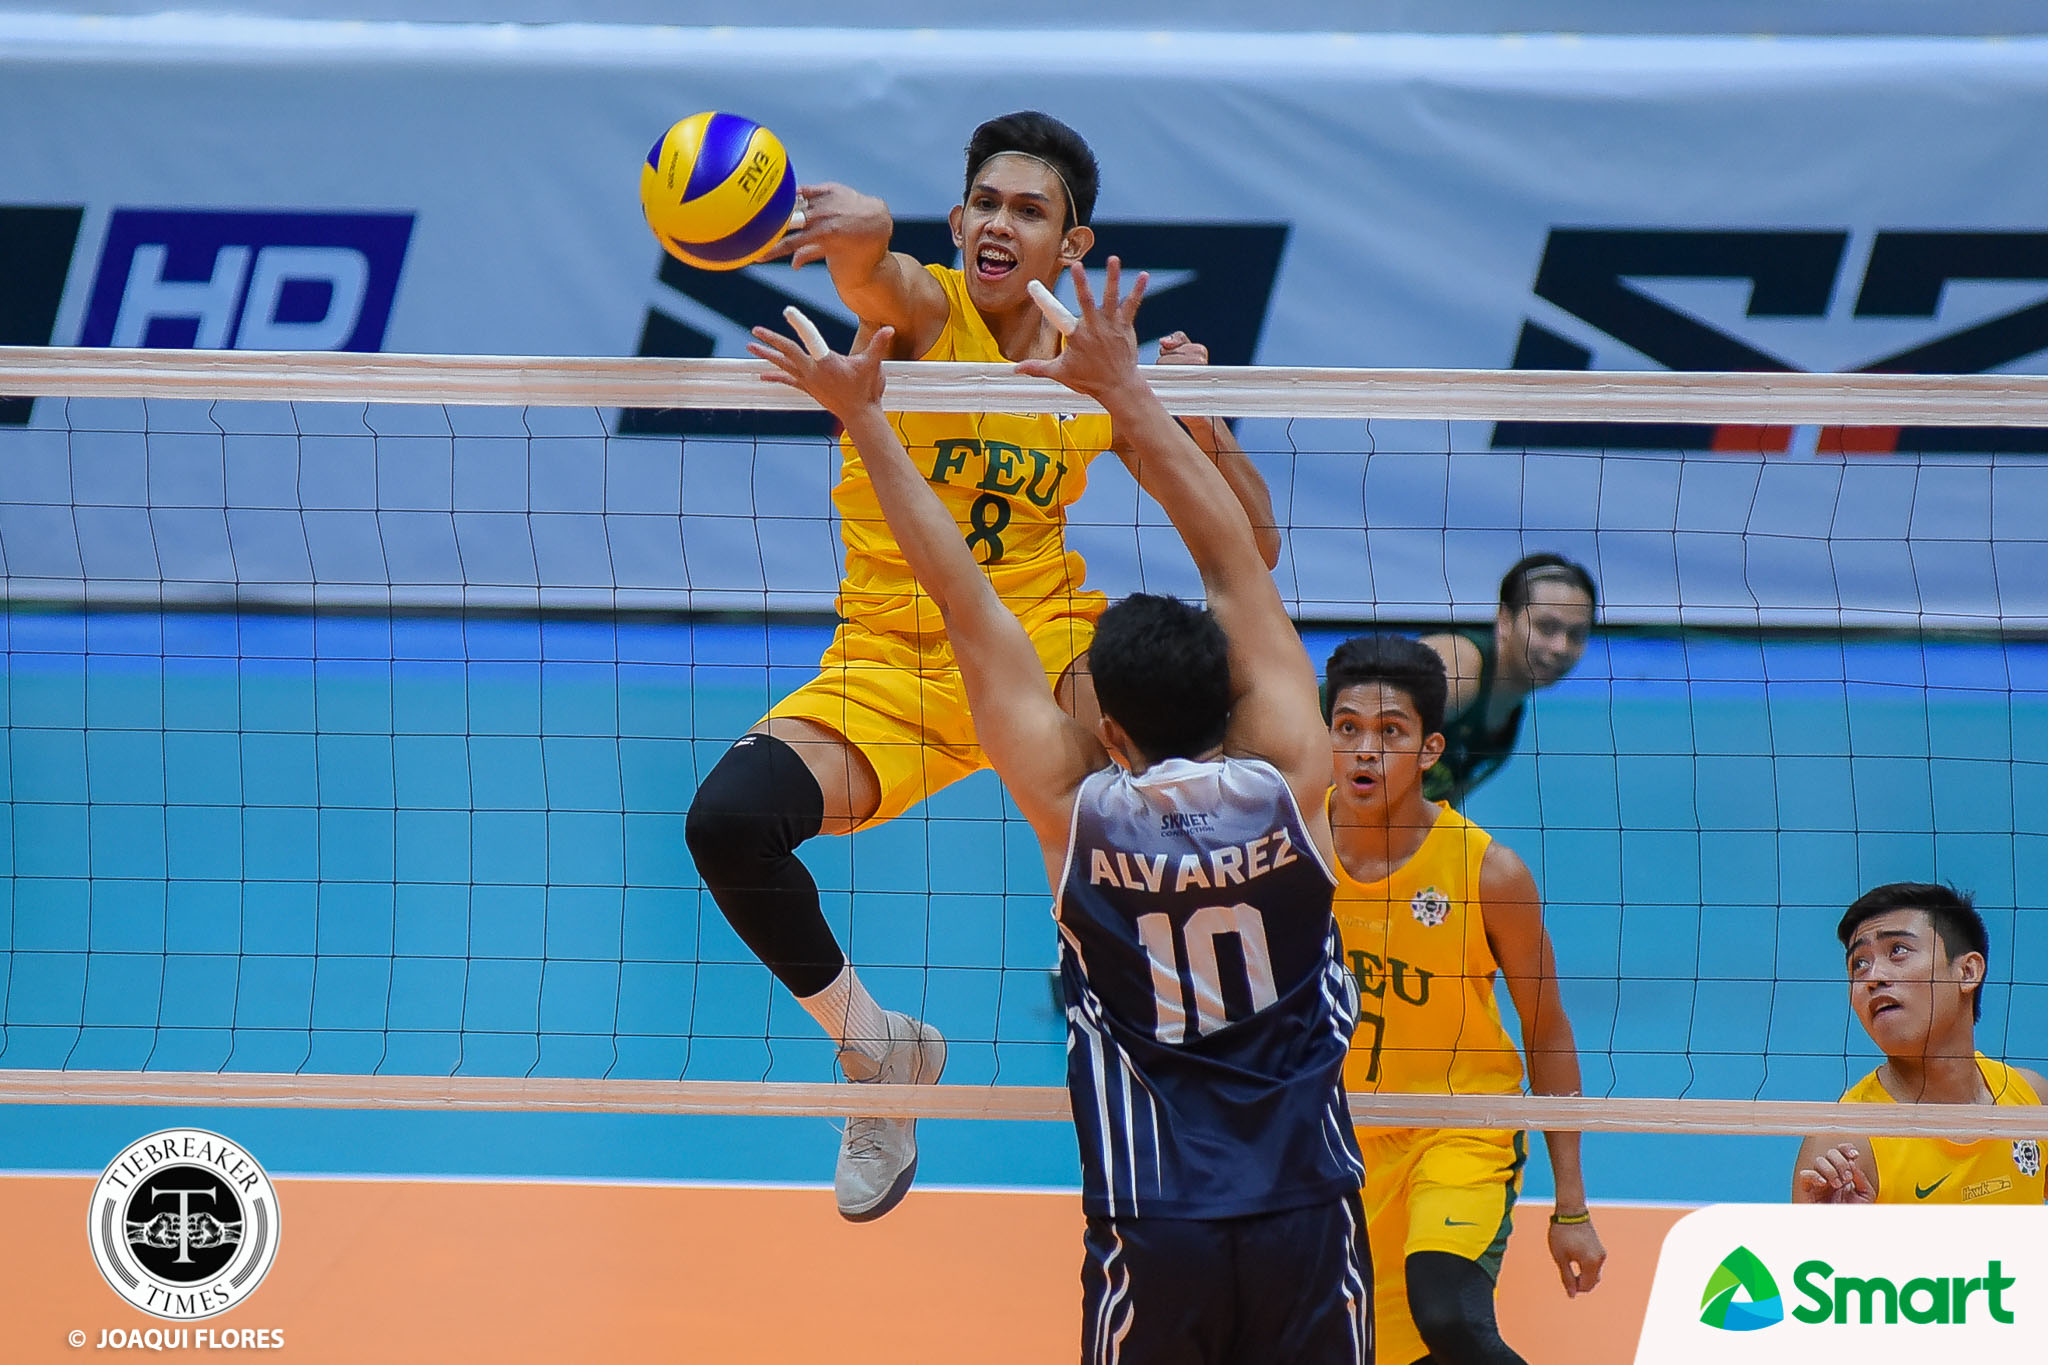 Tiebreaker Times FEU dents Adamson's record for second win AdU FEU News PVL Volleyball  RJ Paler Rey Diaz Pao Pablico Joshua Barrica George Labang FEU Men's Volleyball Domeng custodio Adamson Men's Volleyball 2018 PVL Season 2018 PVL Men's Collegiate Conference